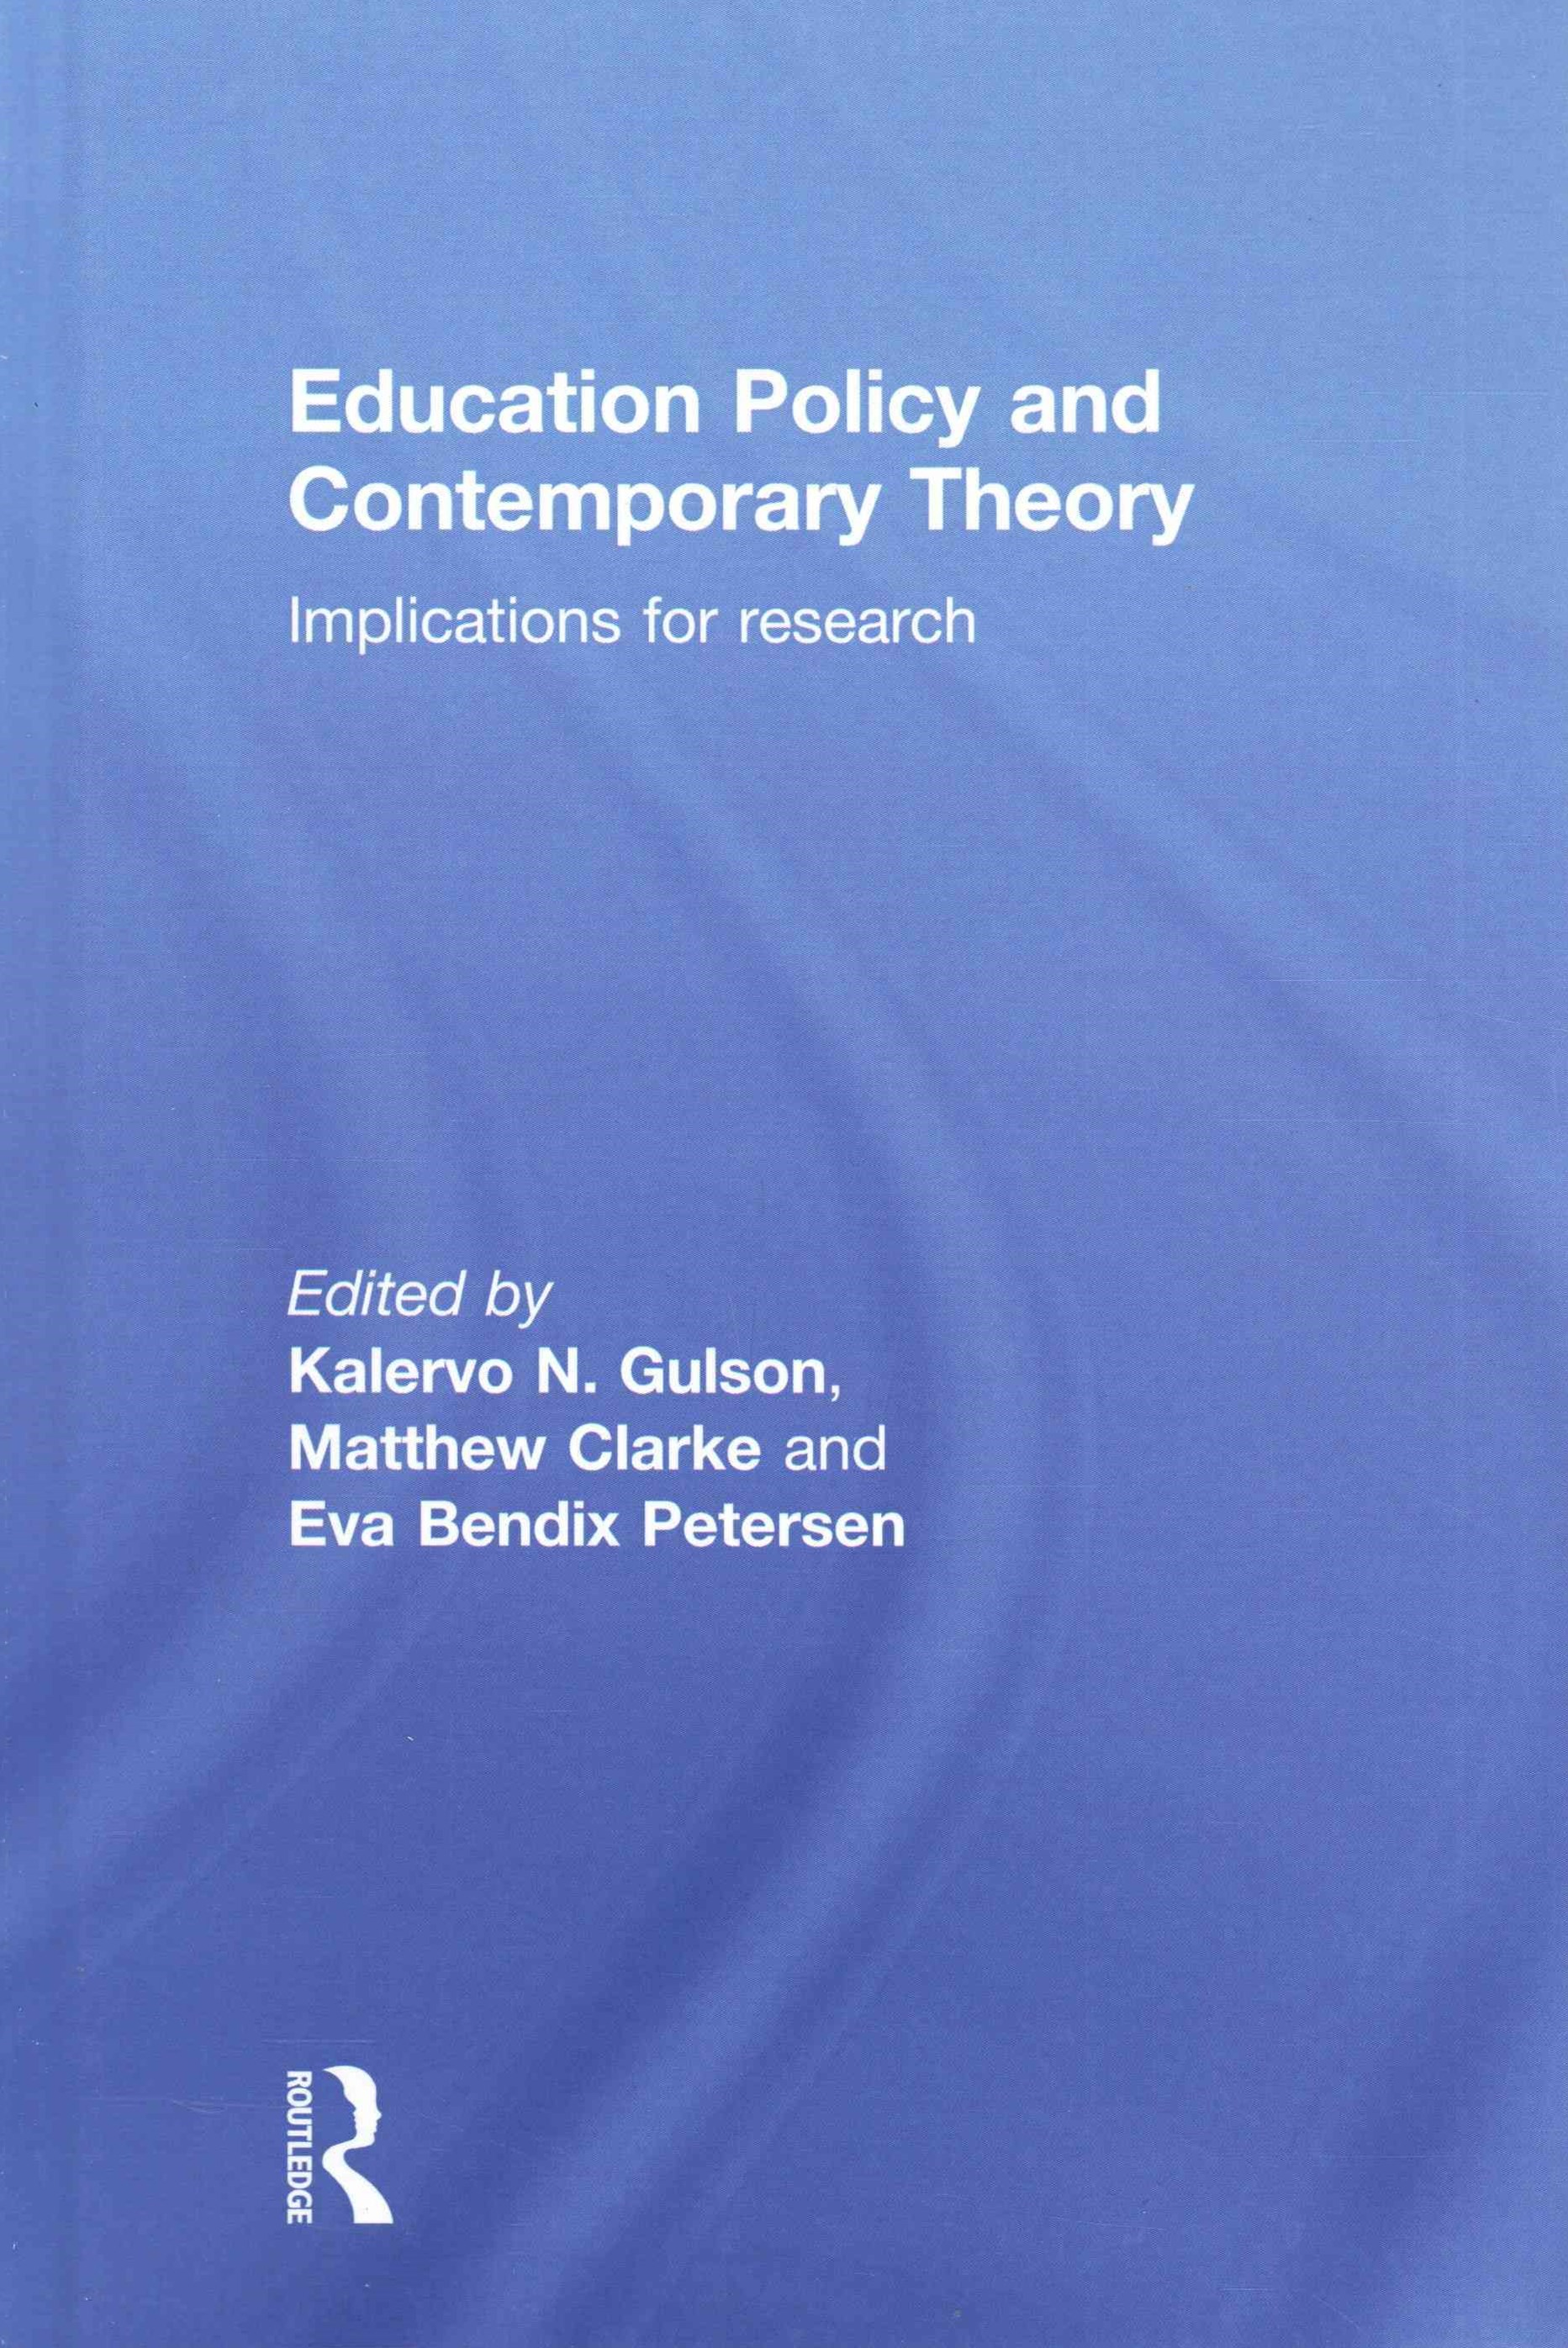 Education Policy and Contemporary Theory